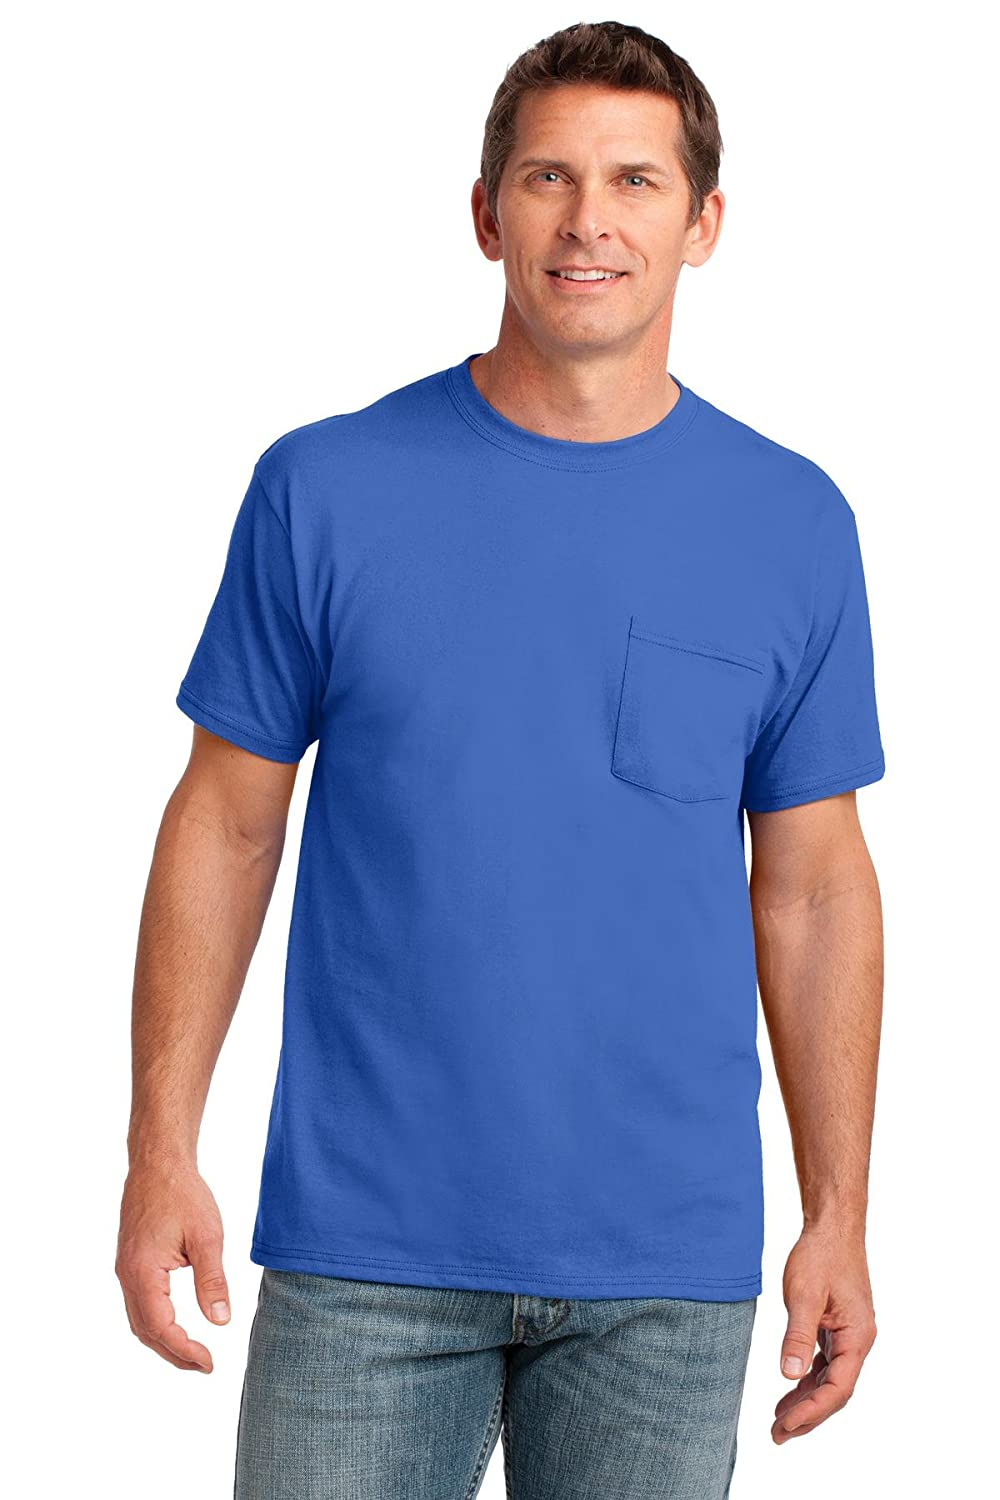 3978a827988f Style #: PC54P A chest pocket makes this classic value-priced tee even more  indispensable. 5.4-ounce 100% cotton Tag-free label Shoulder-to-shoulder  taping ...